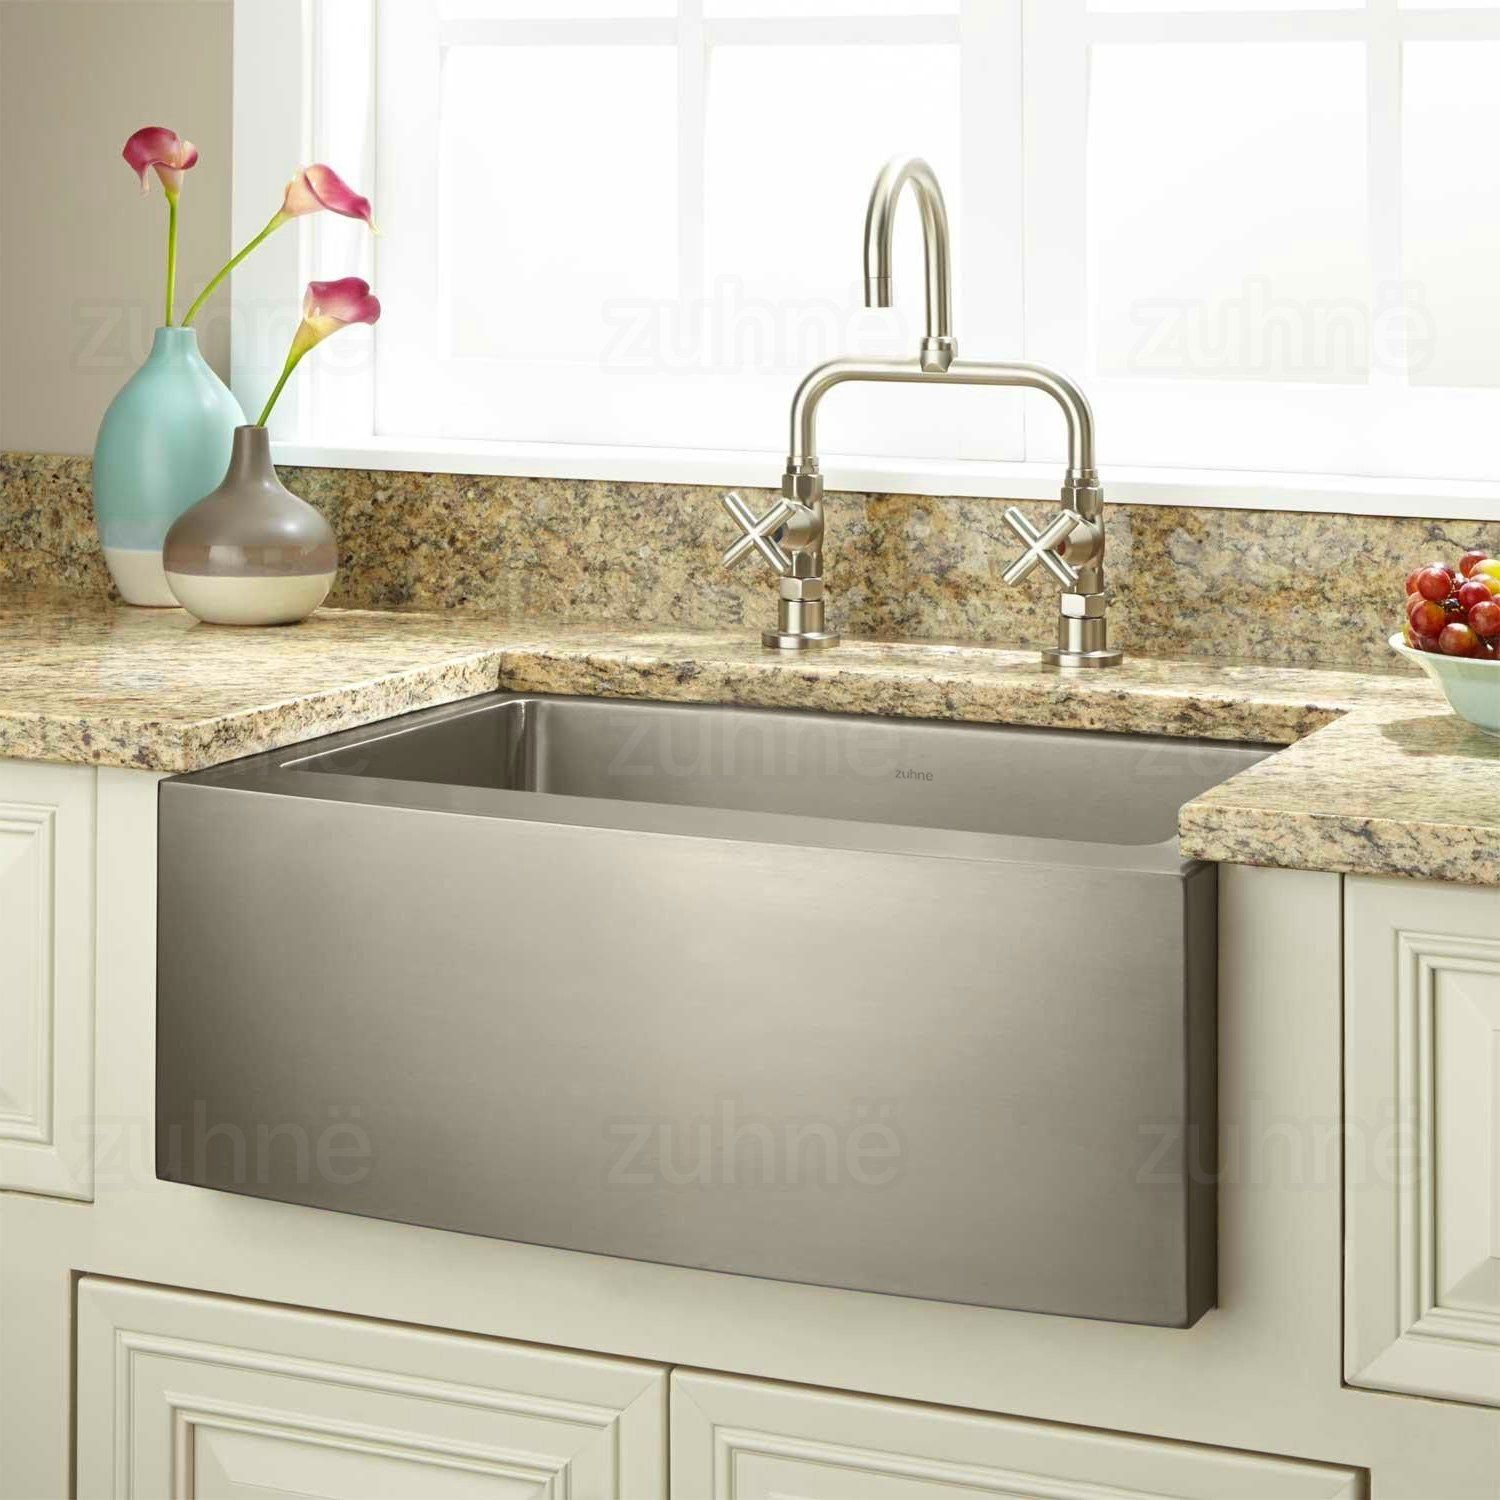 Medium image of zuhne 24 inch farmhouse apron deep single bowl 16 gauge stainless steel luxury kitchen sink